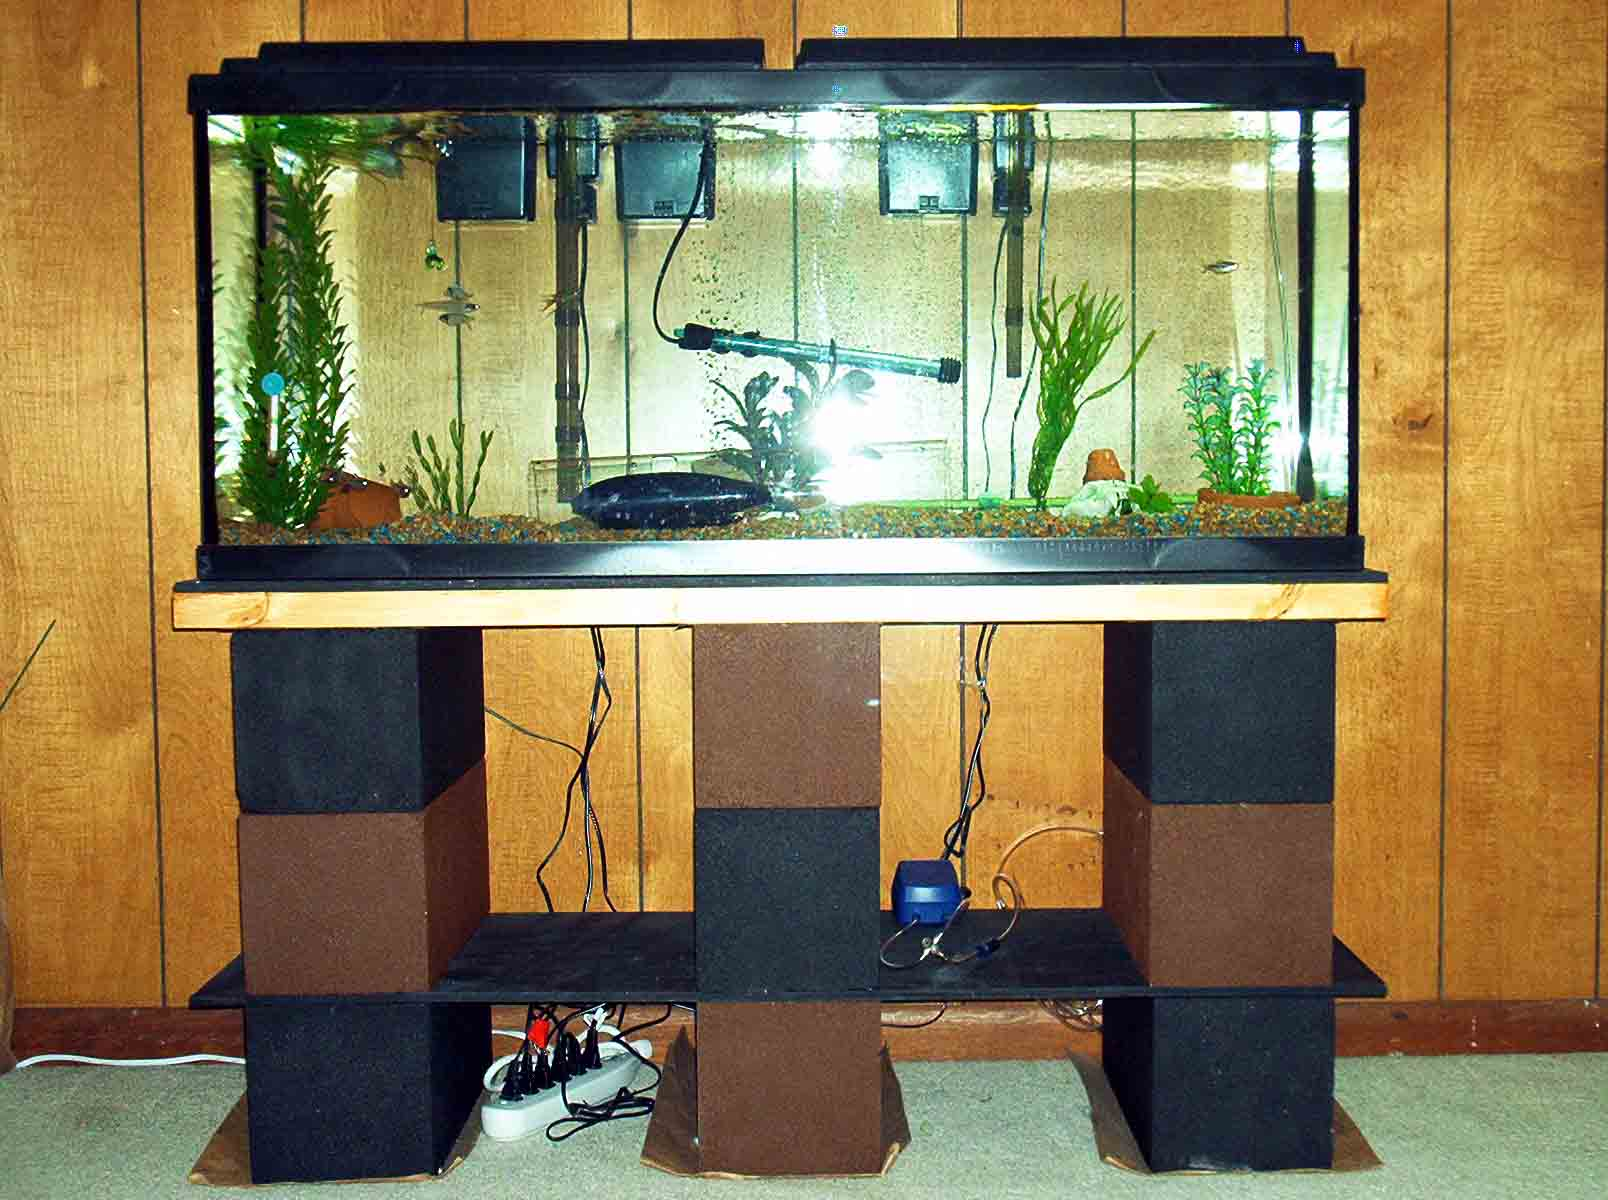 How Much Does It Cost To Build A 75 Gallon Aquarium Stand